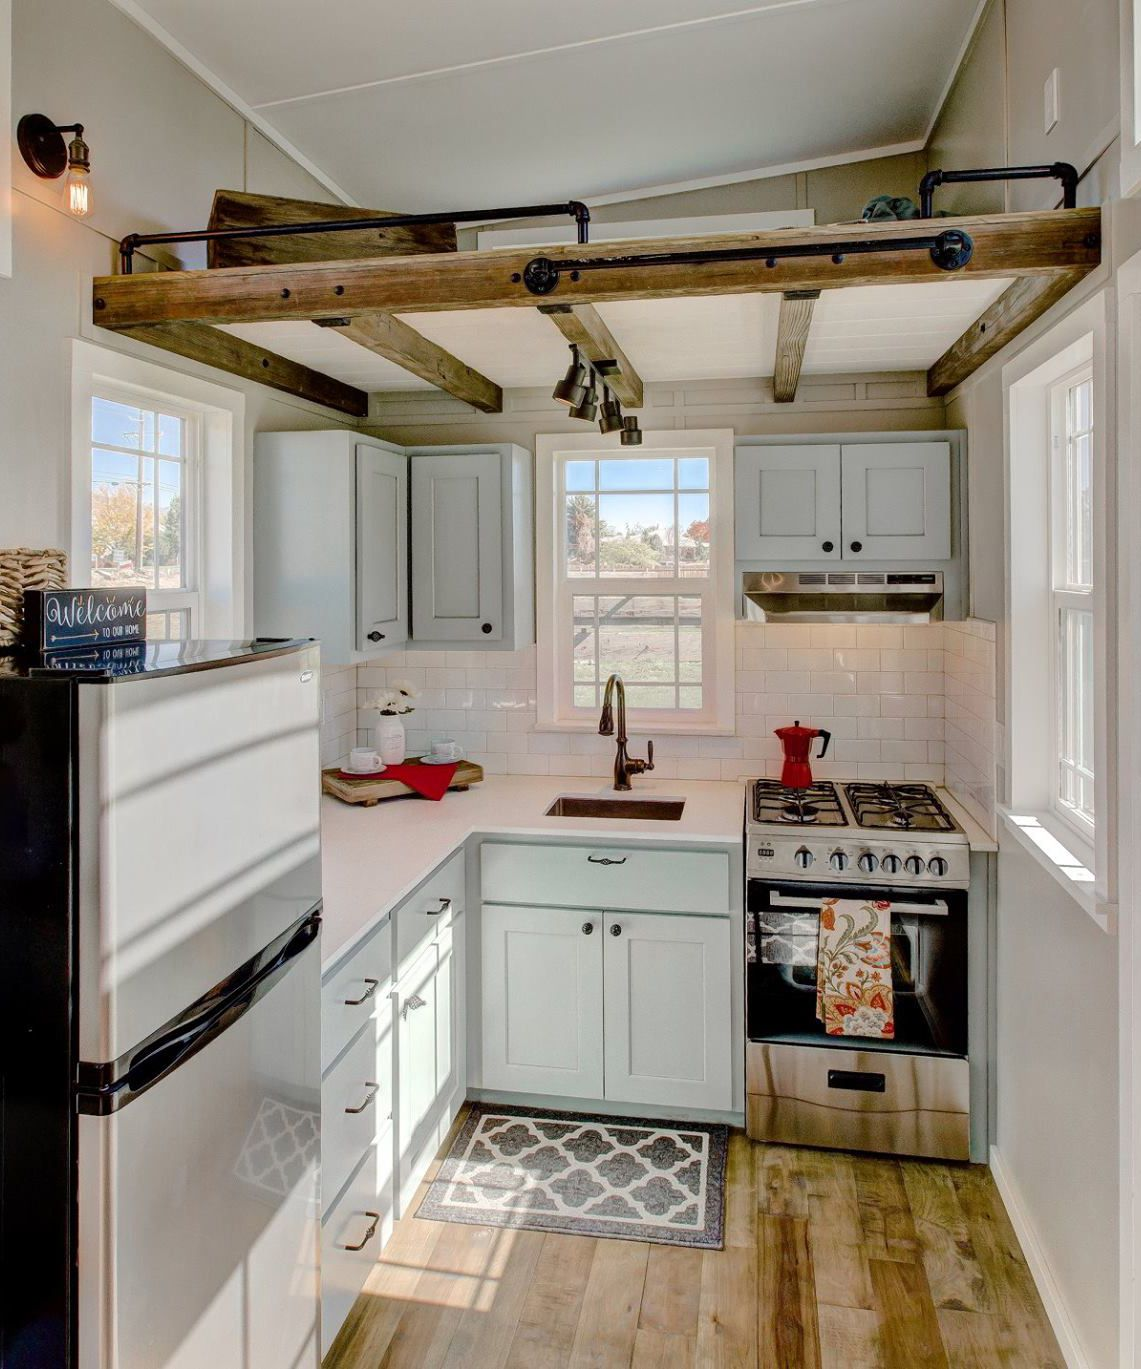 Huckleberry By Mouse House Tiny Homes Tiny House Kitchen